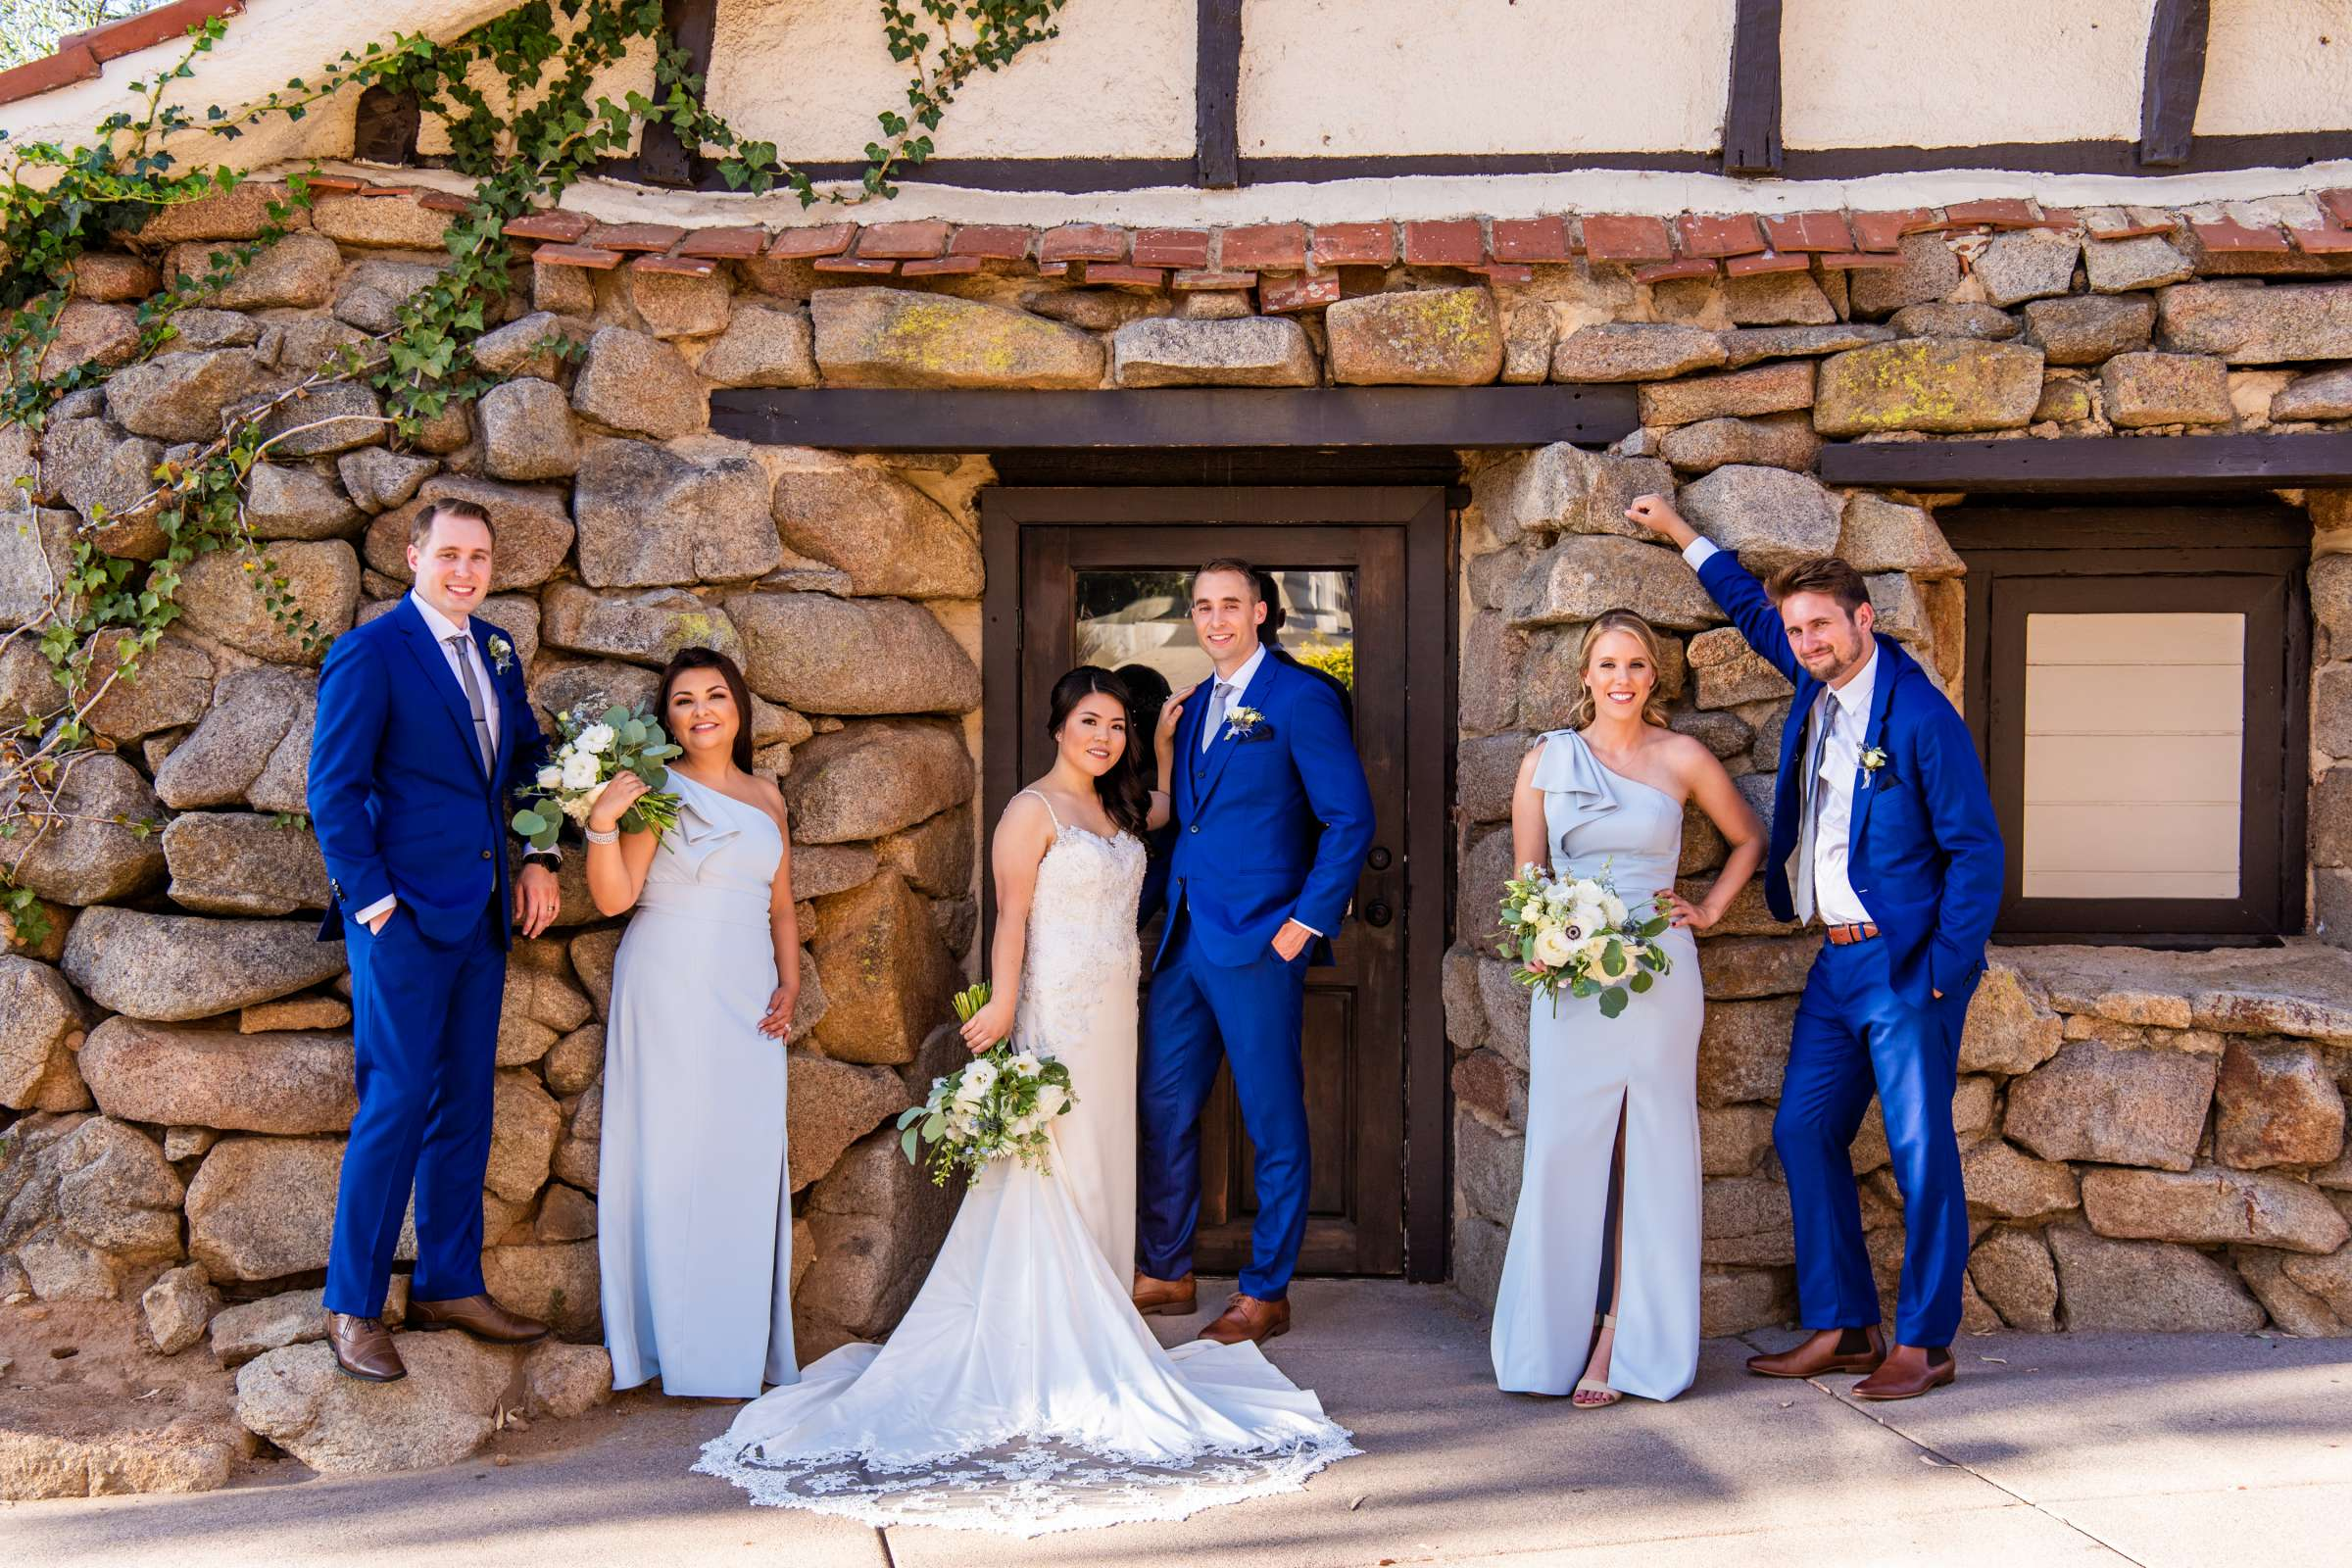 Mt Woodson Castle Wedding coordinated by I Do Weddings, Aya and Jared Wedding Photo #486869 by True Photography